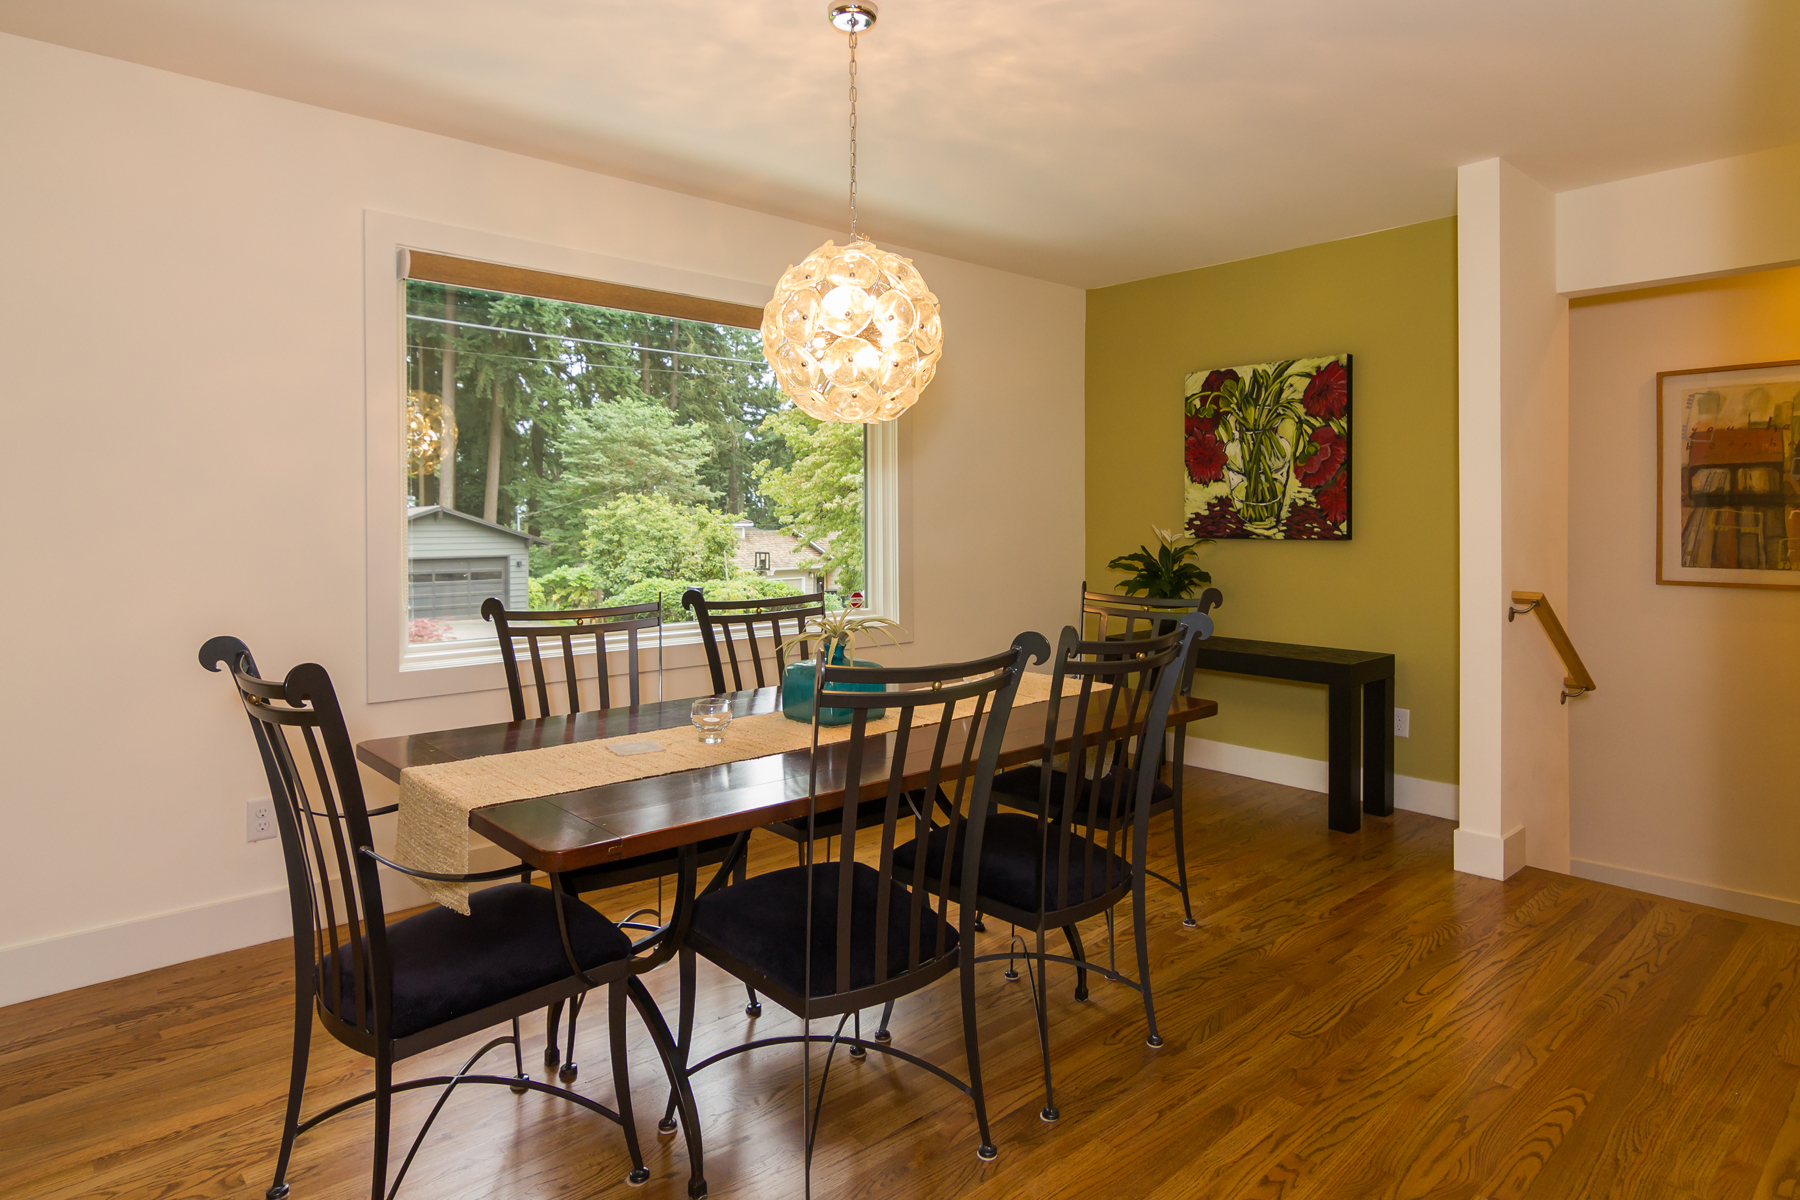 Dining Room detail with large picture window.